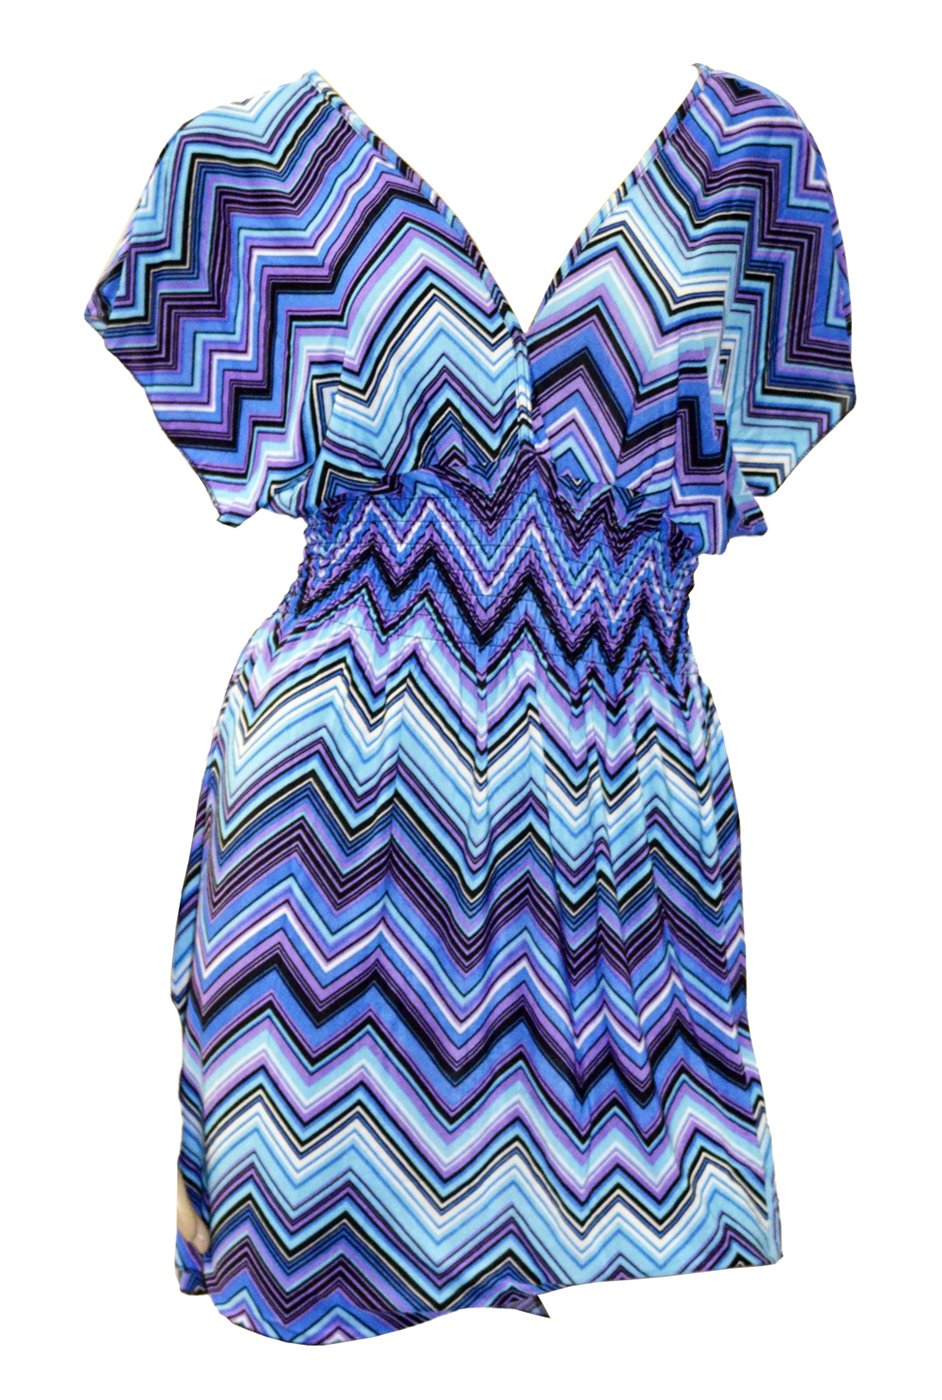 Belle Donne -Women's Sundress Multi-Color Chevron Prints Summer Pullover Dress -